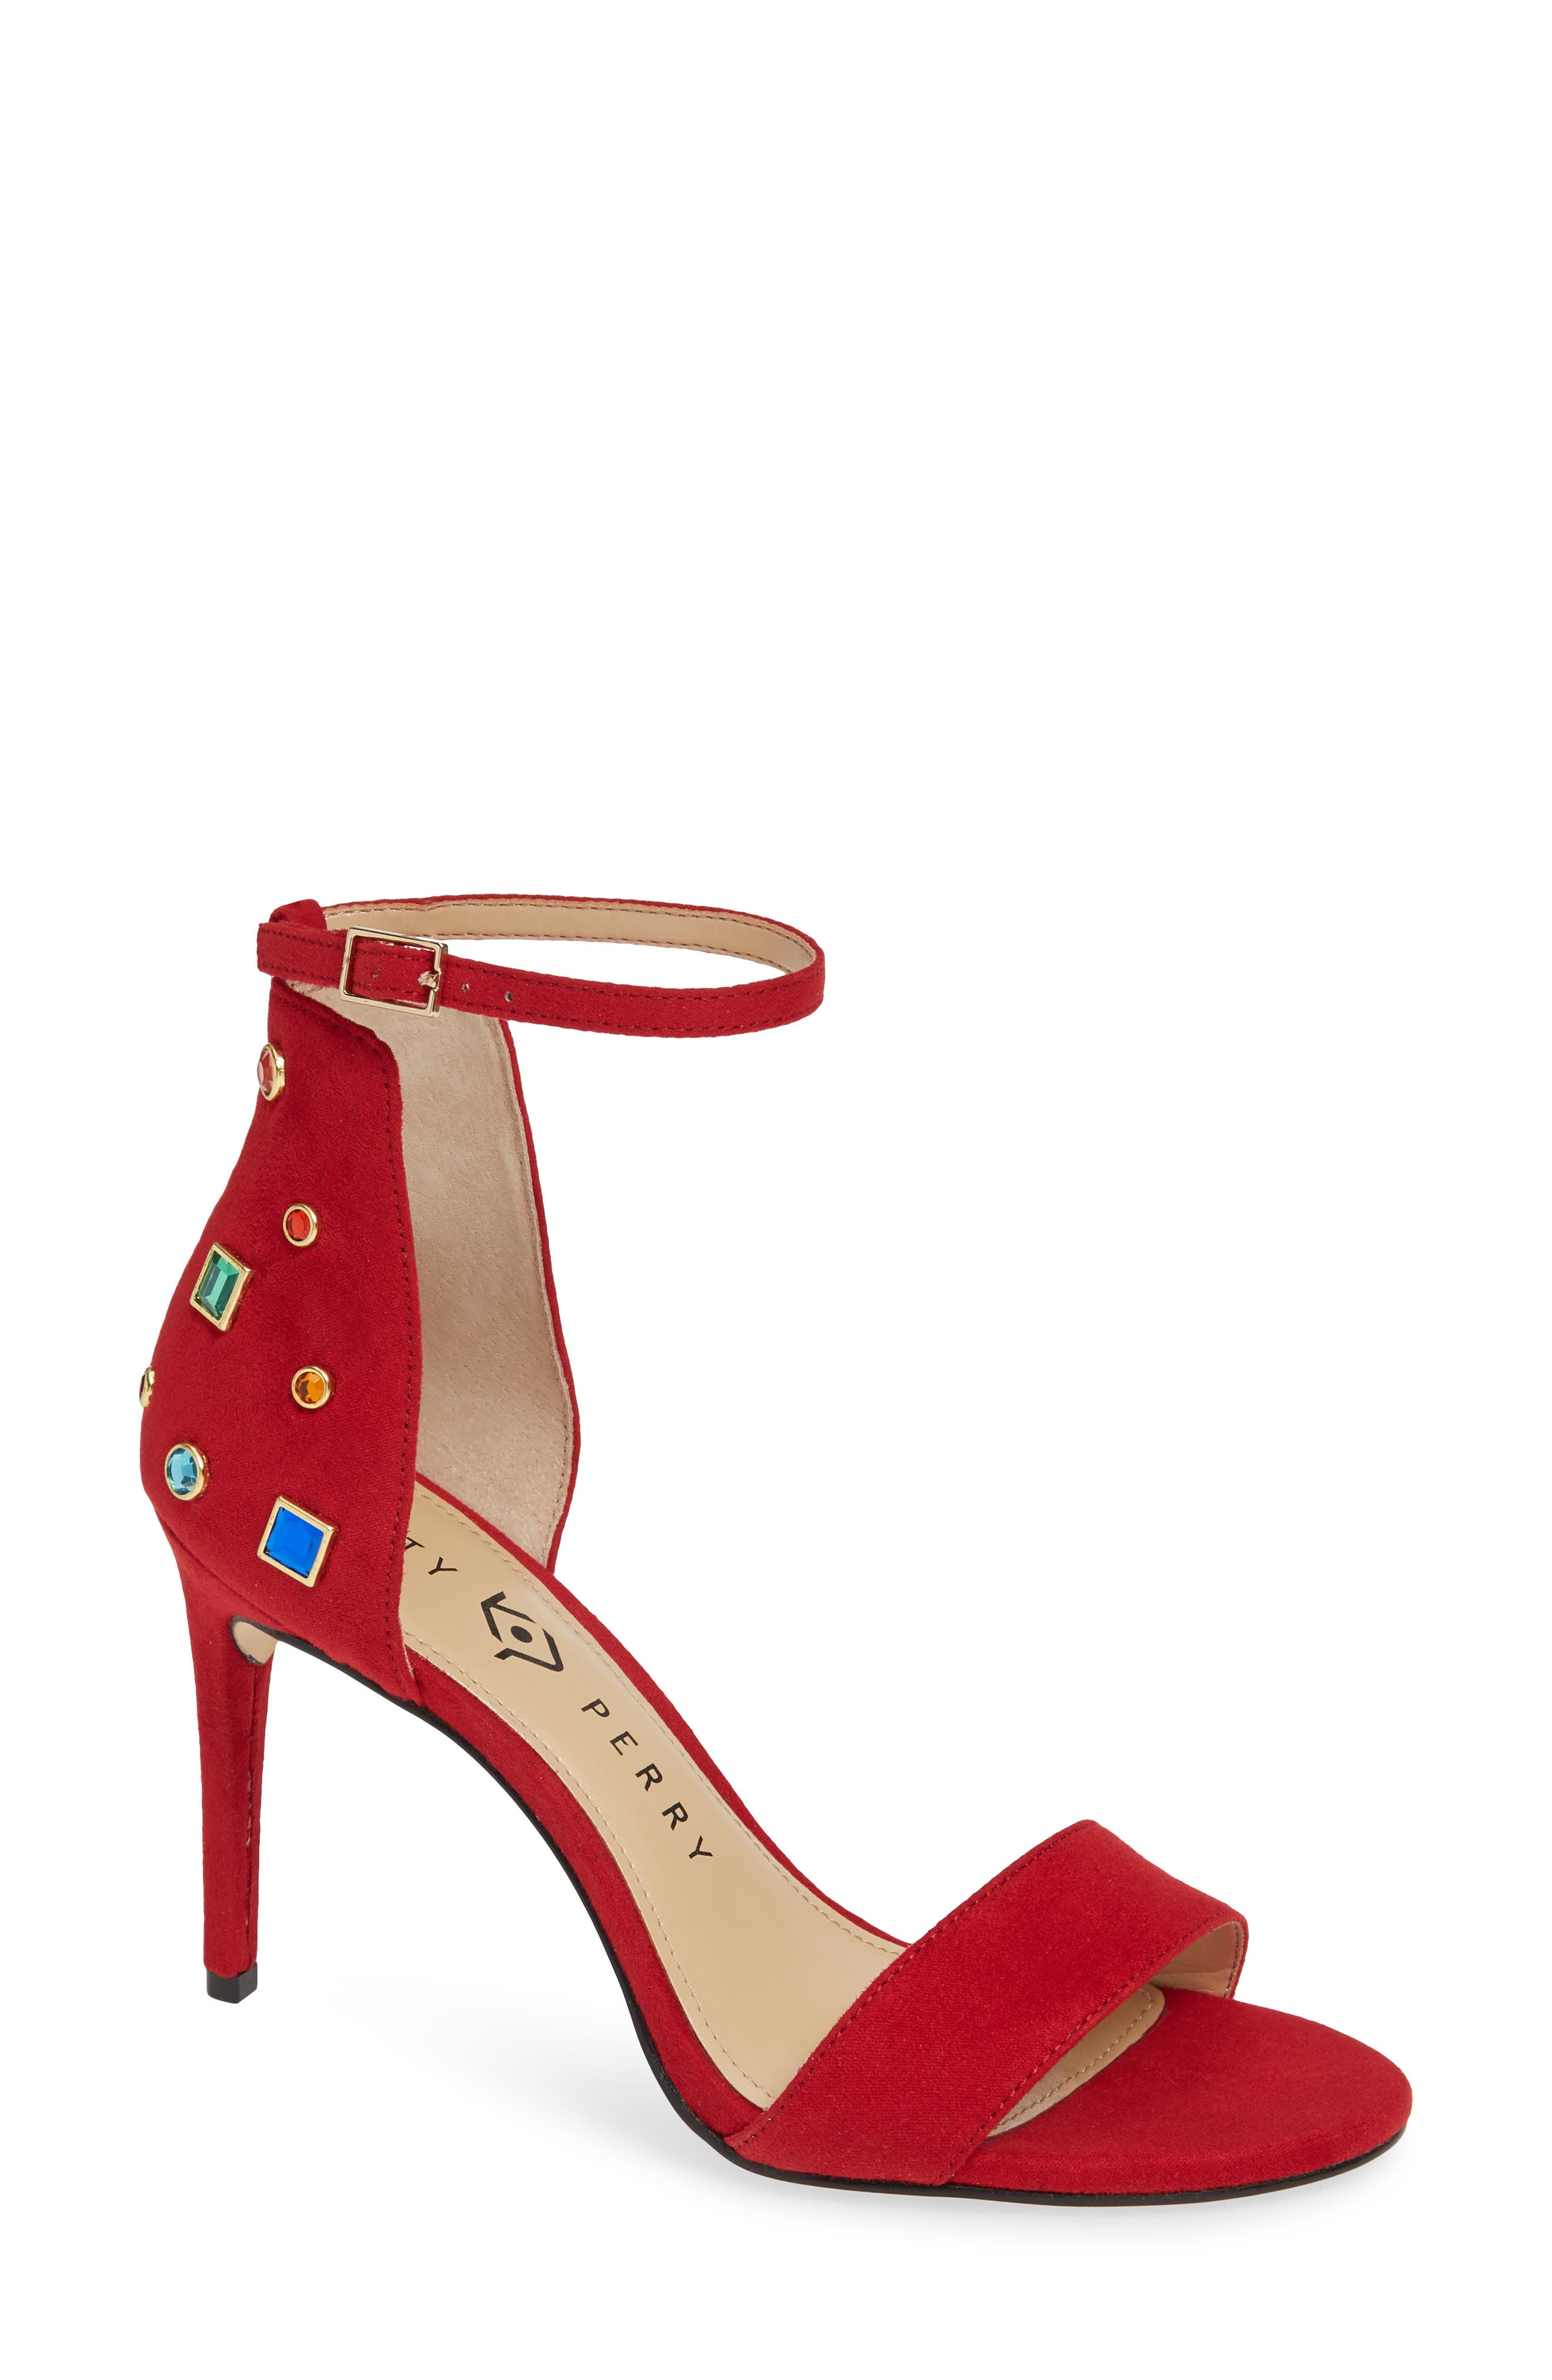 Jewel Ankle Strap Sandal in Red